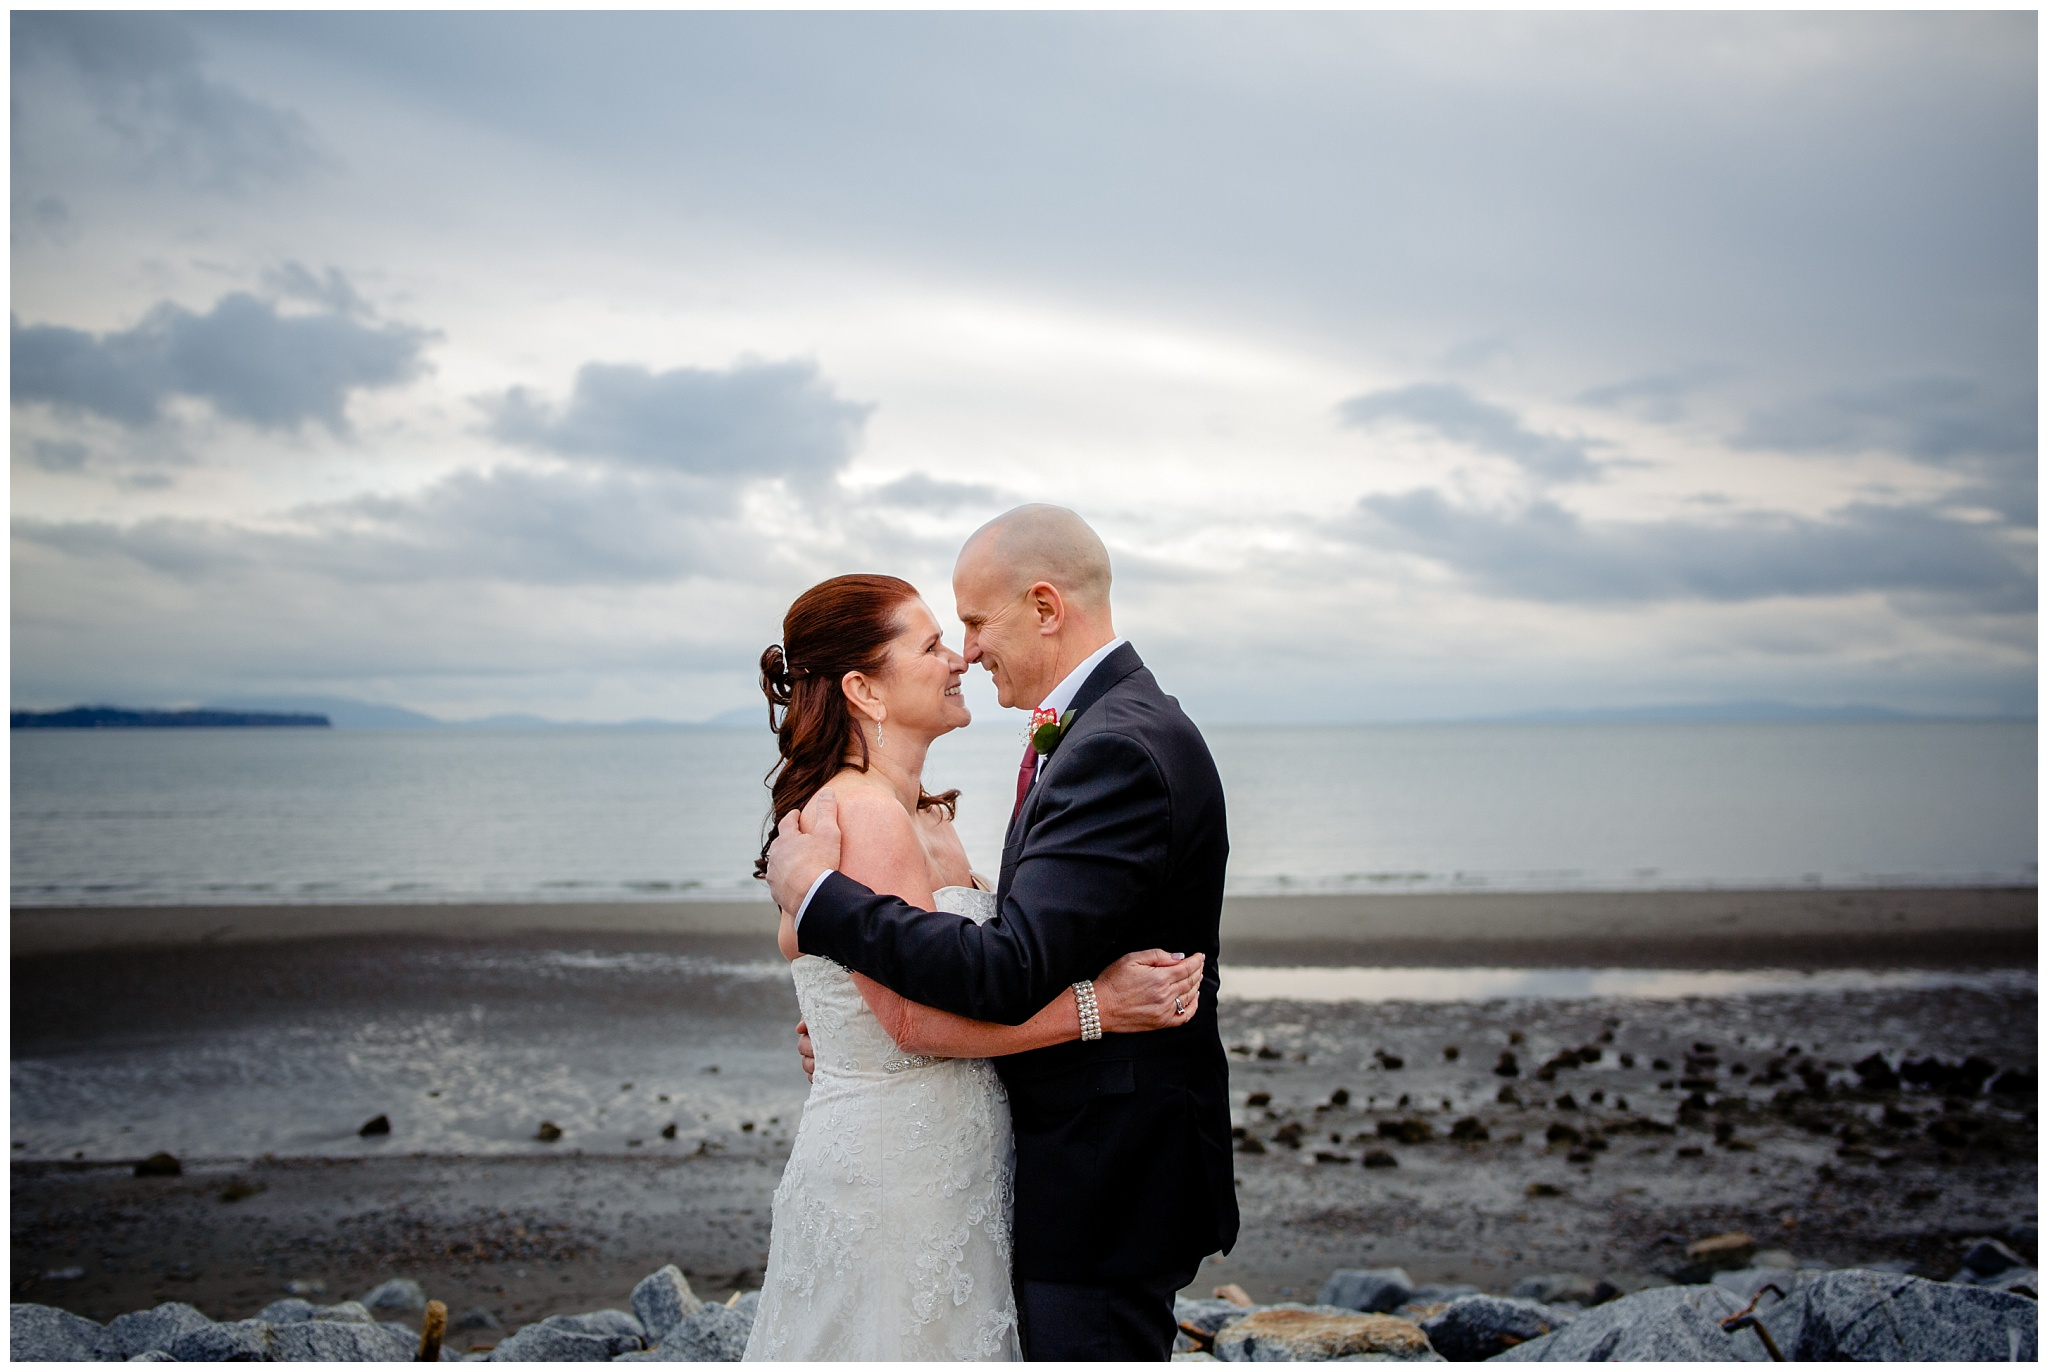 White Rock Intimate Wedding 5 Star Catering Venue Surrey BC Middle Aged Couple_0010.jpg